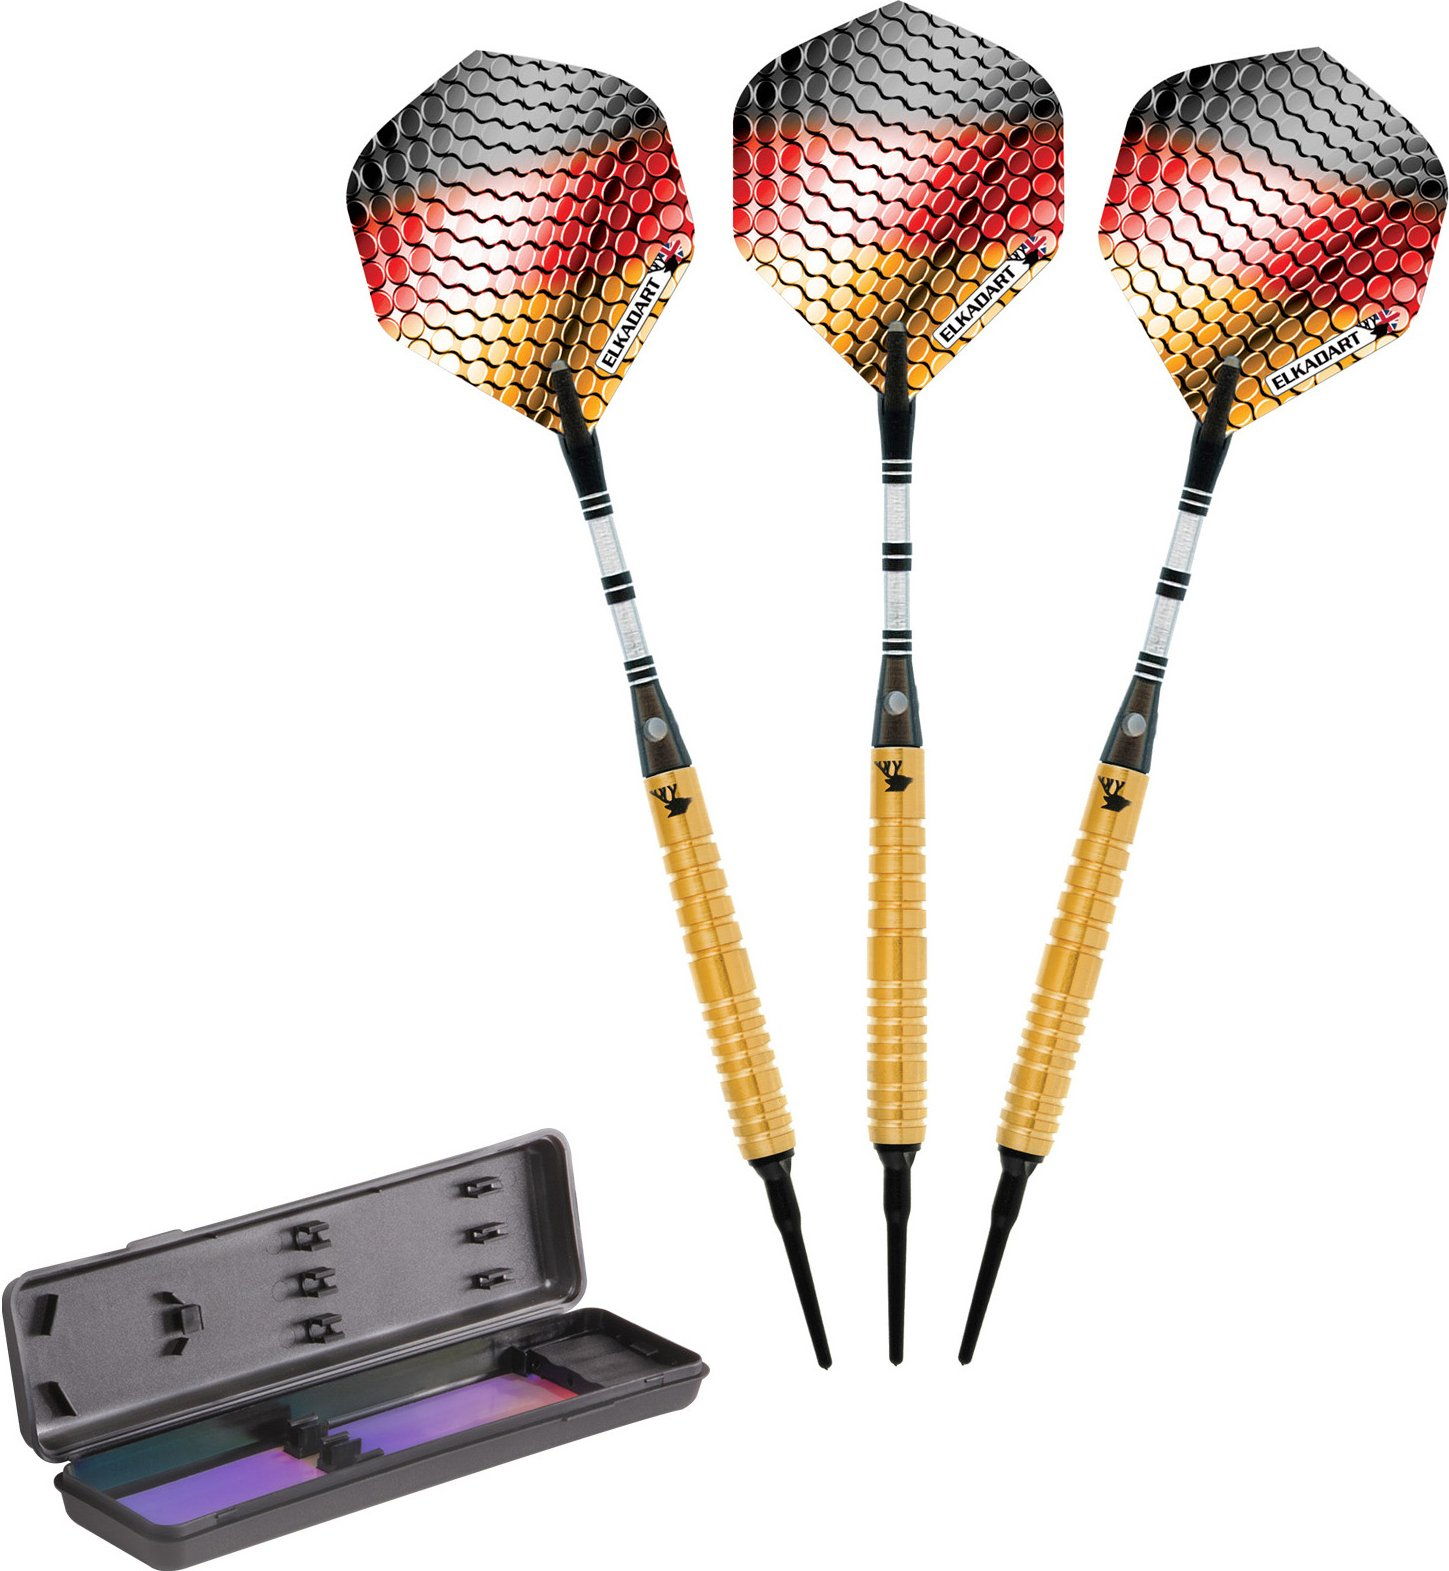 Elkadart Titanium 90% Tungsten Soft Tip Darts with Storage/Travel Case, Gold, 18 Grams